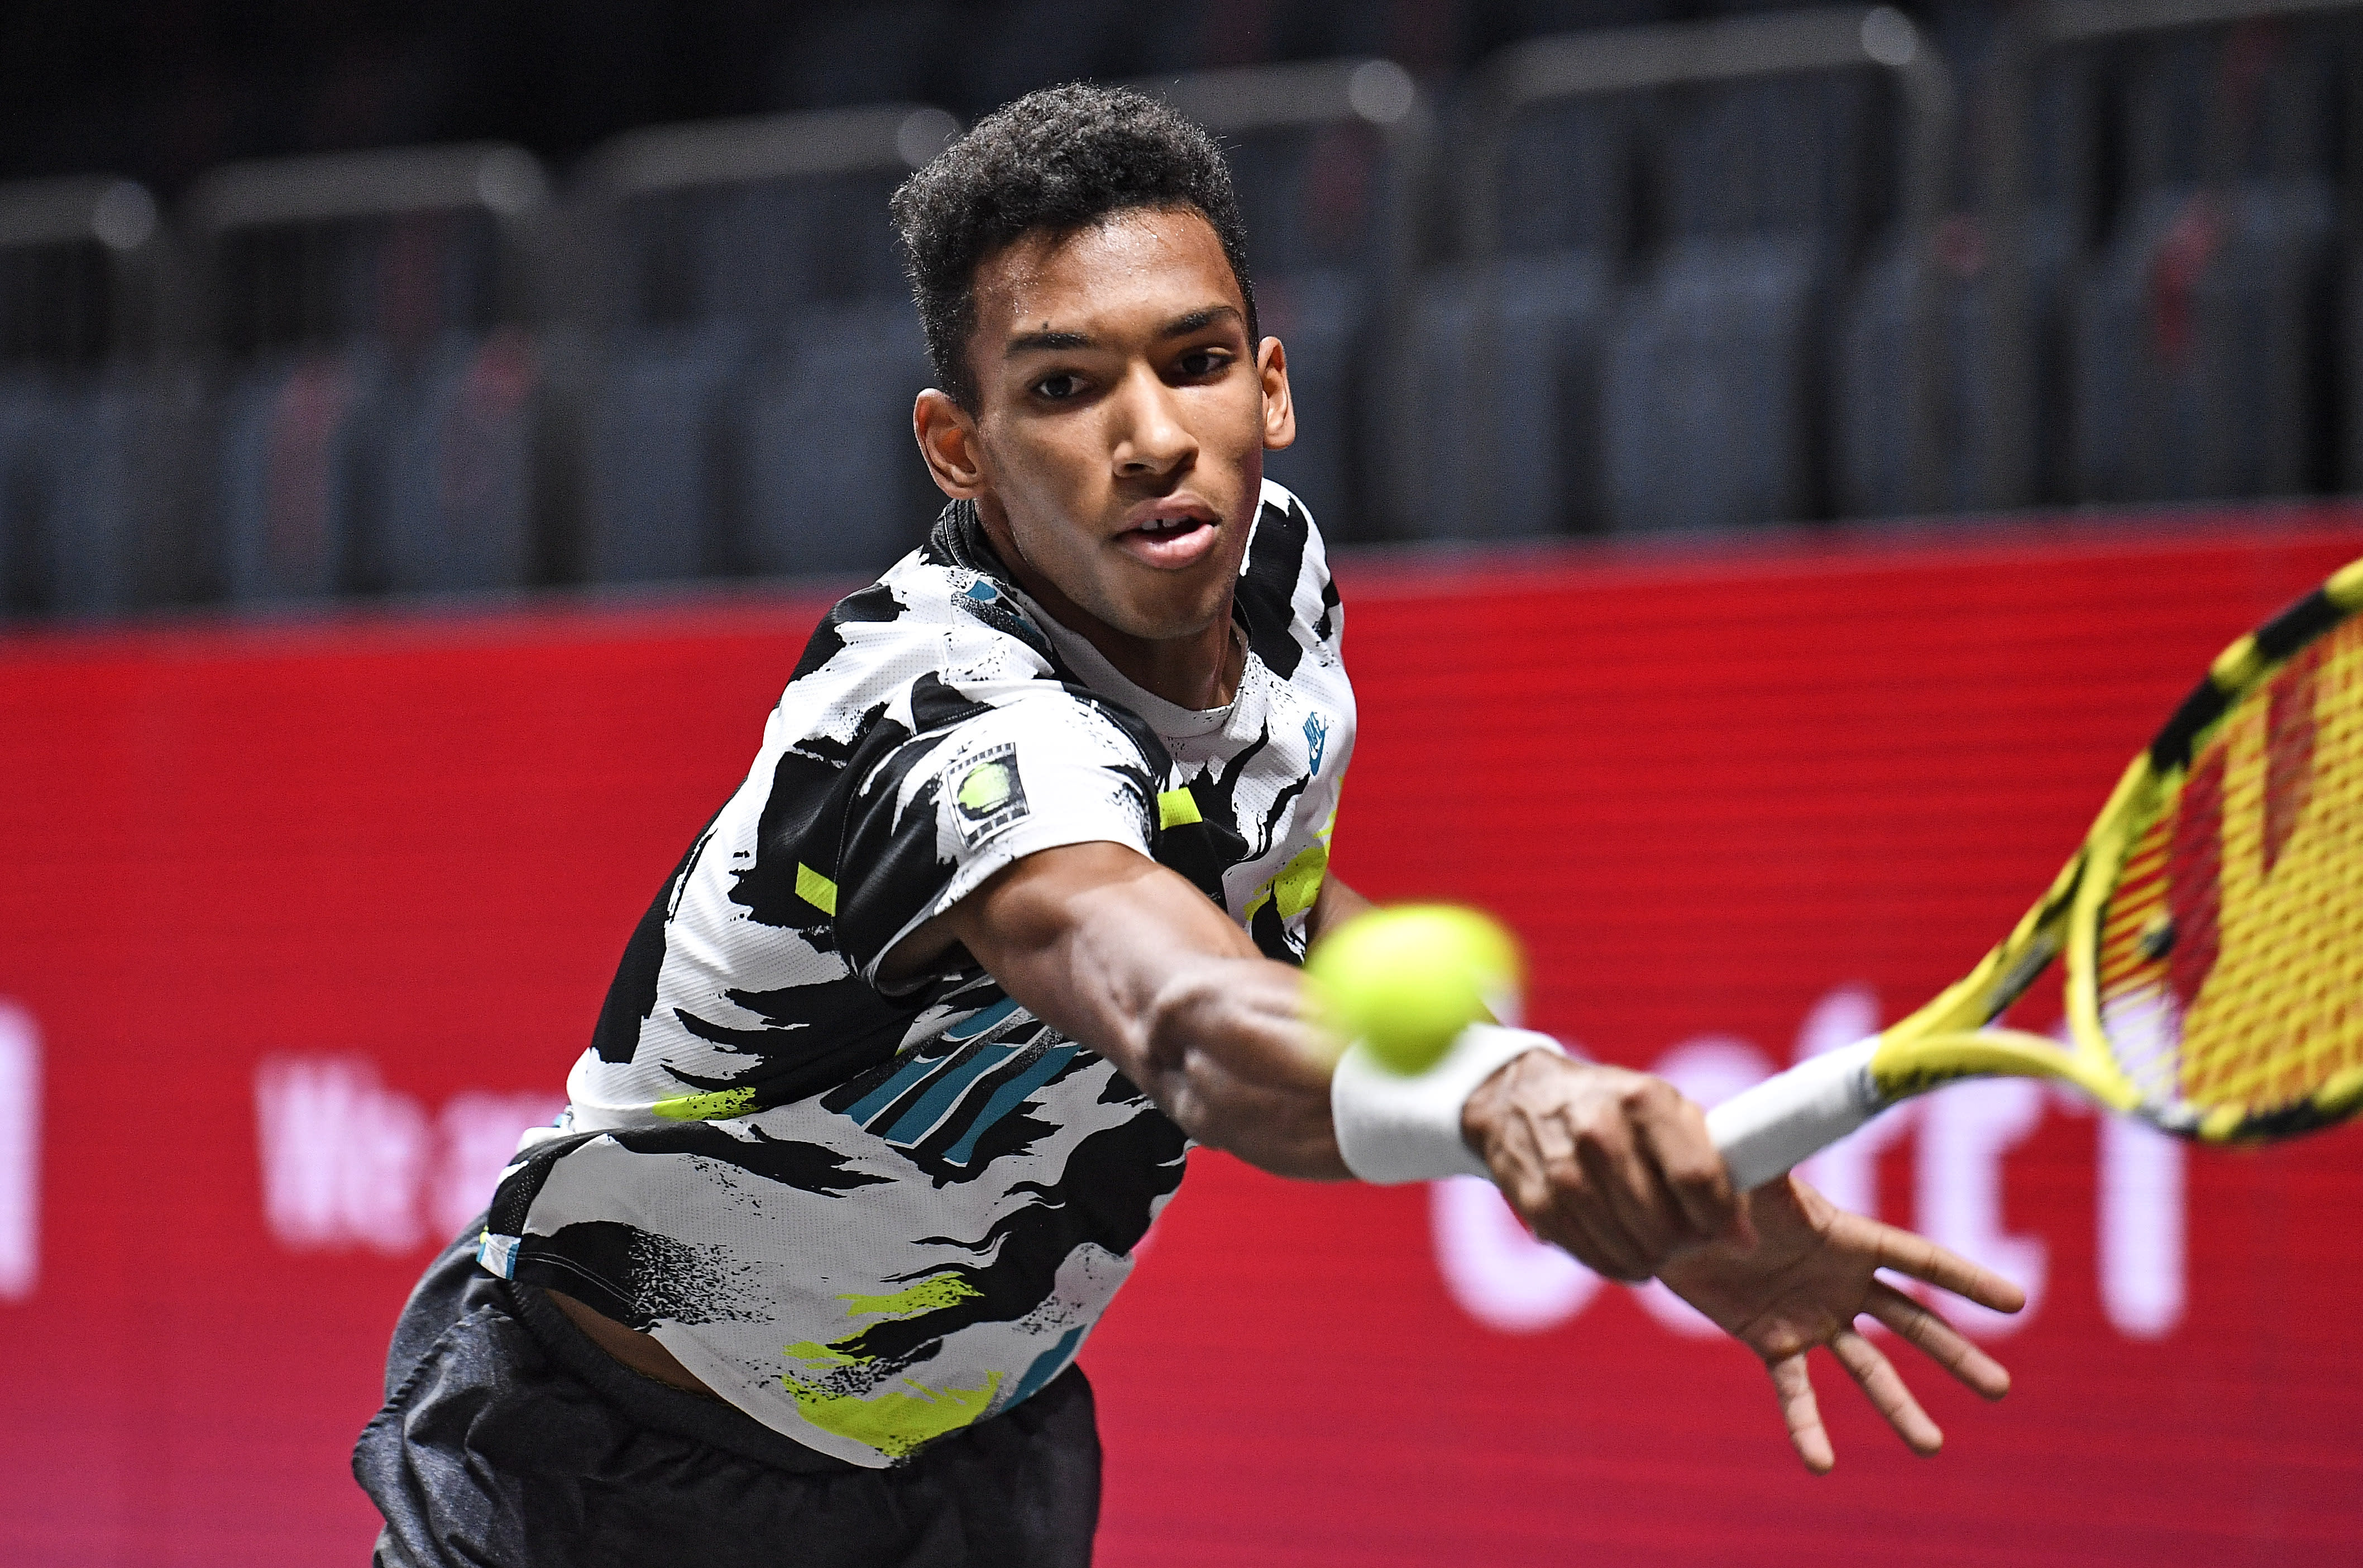 Canada's Felix Auger-Aliassime returns the ball during the ATP bett1HULKS Indoors tennis final against Germany's Alexander Zverev in Cologne, Germany, Sunday, Oct. 18, 2020. (AP Photo/Martin Meissner)